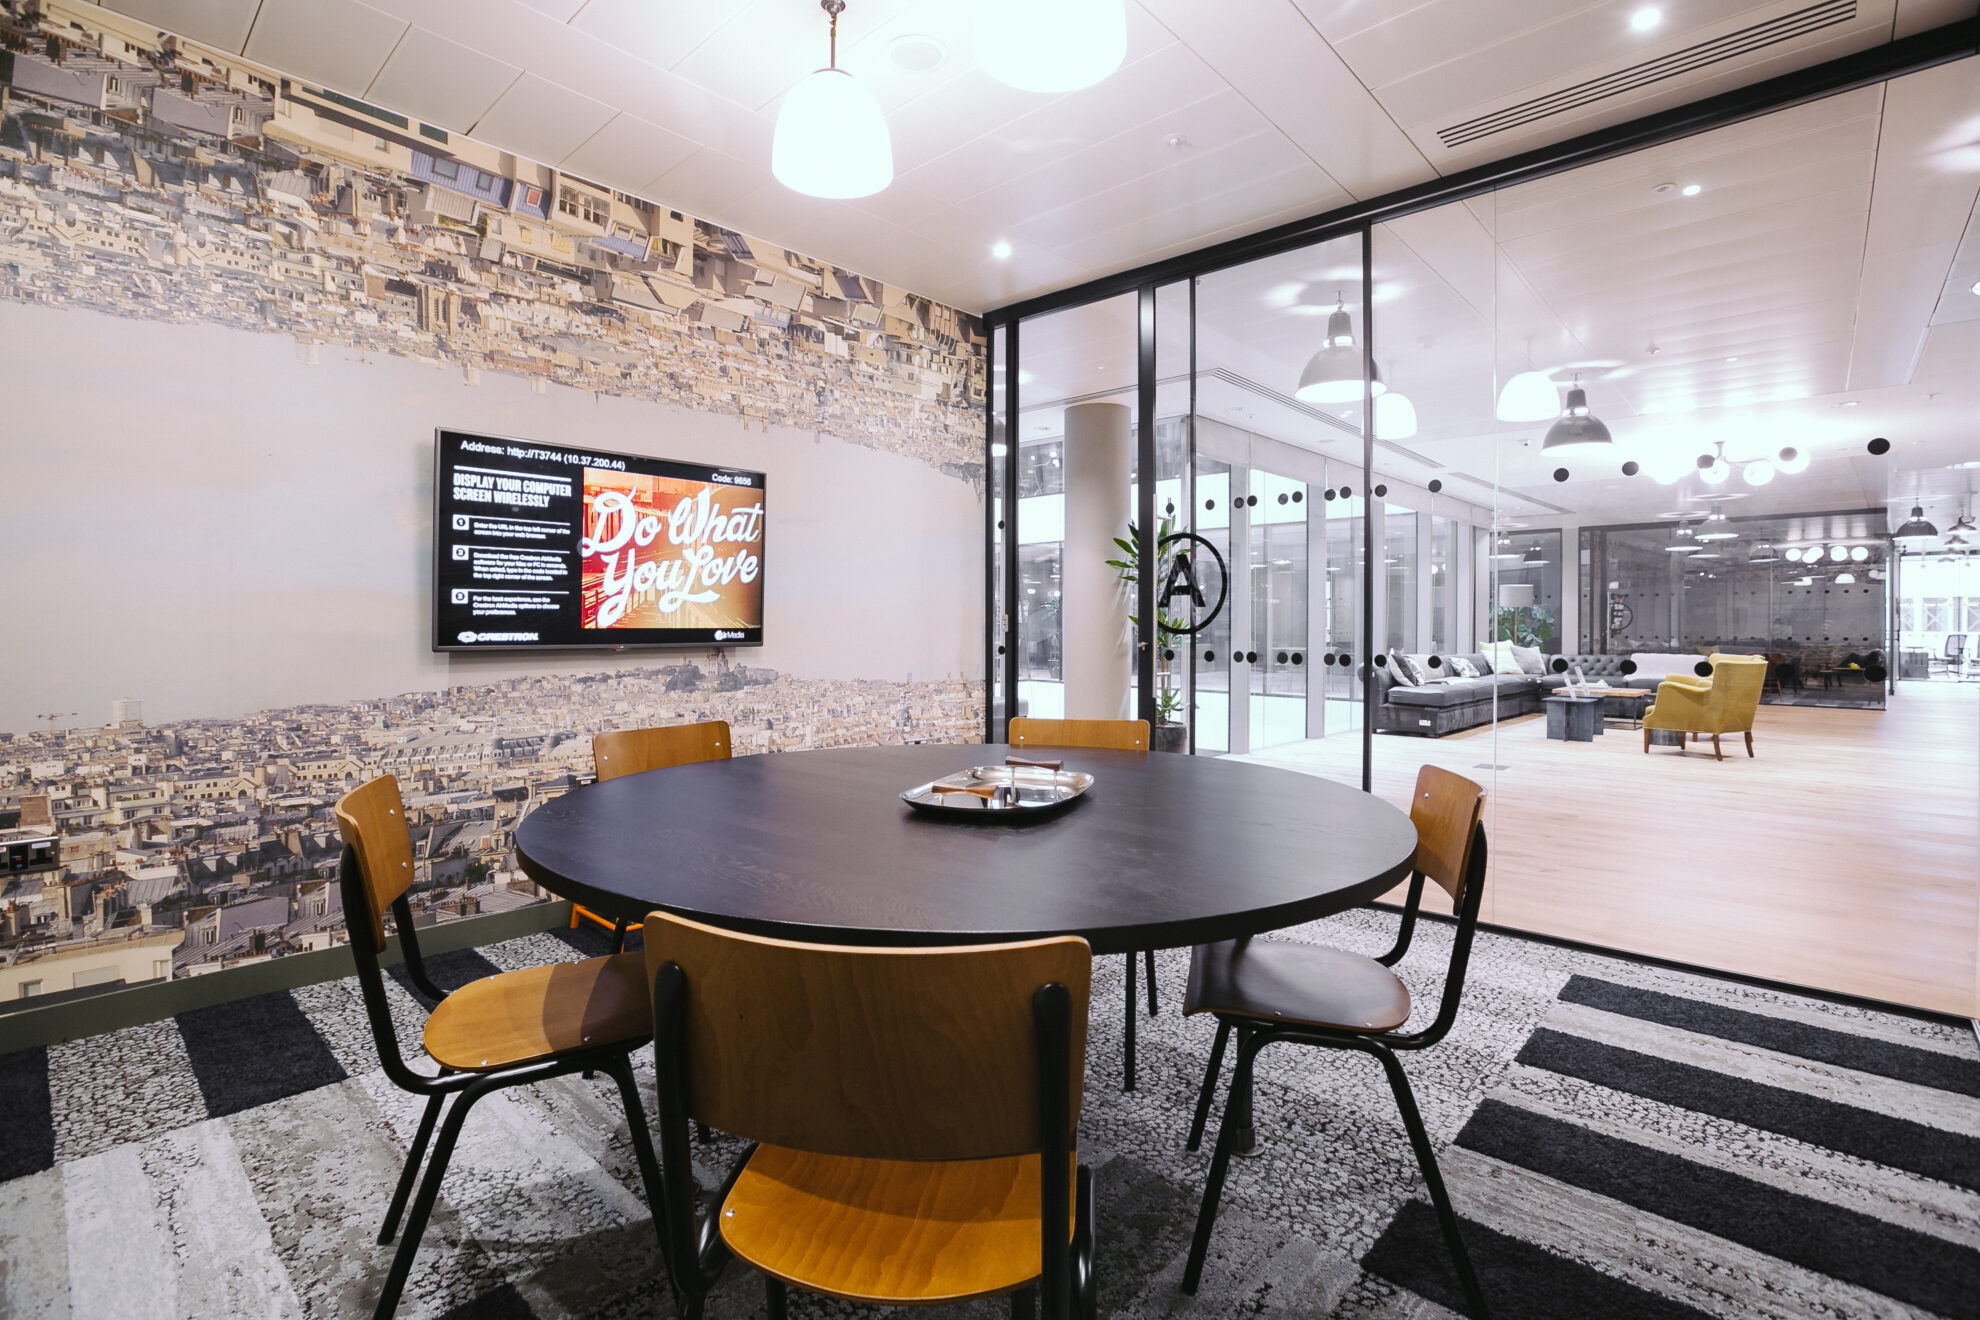 20150915 Moorgate Conference Rooms 3A-2